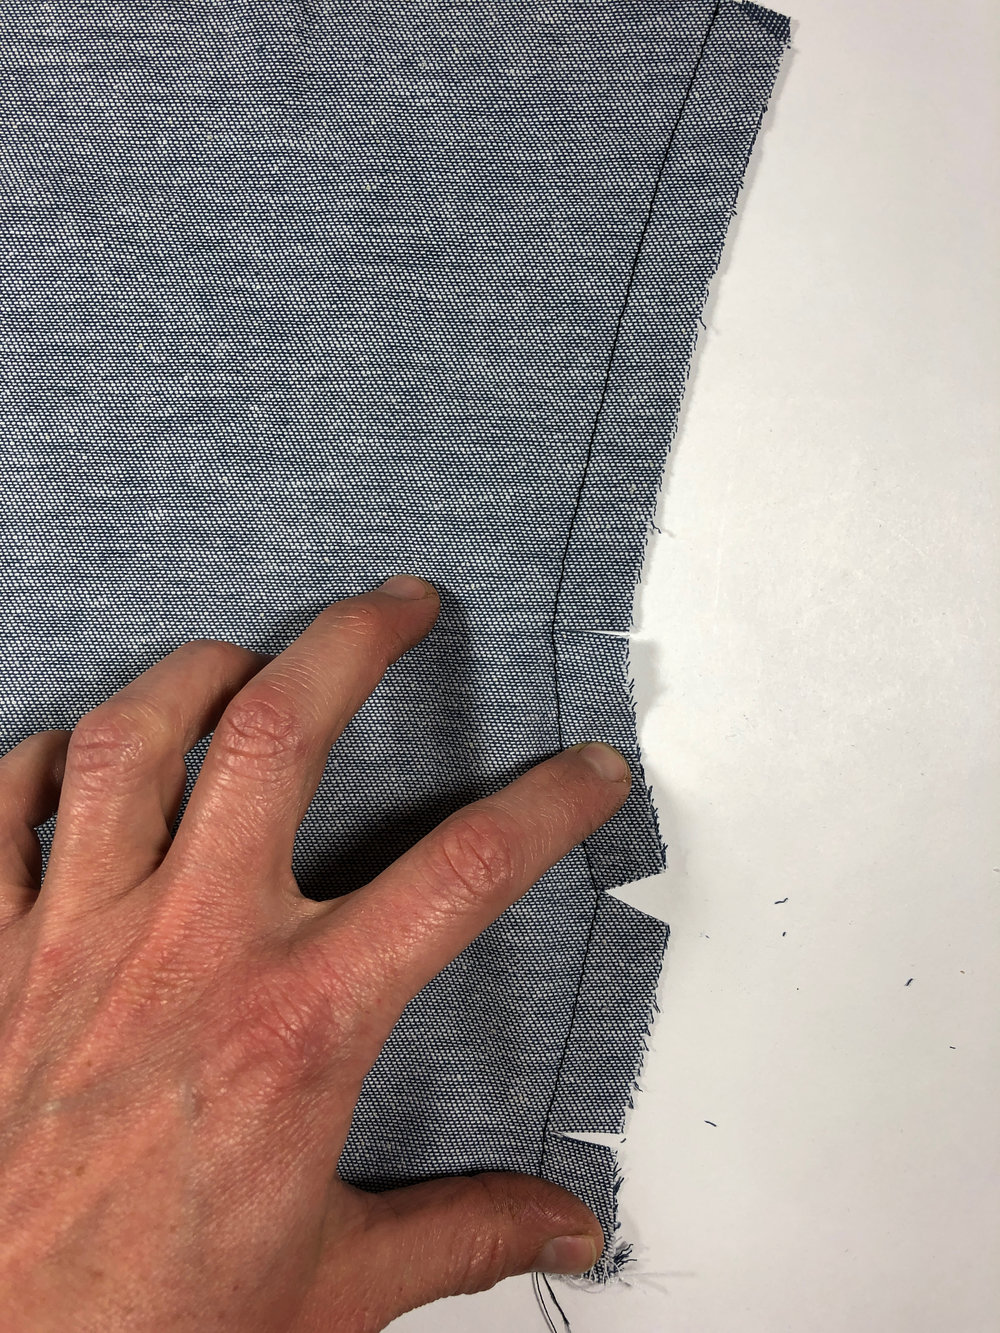 73. Clip into the seam allowance as shown. Clip into top and bottom angles, and clip a small triangle out of the middle angle.